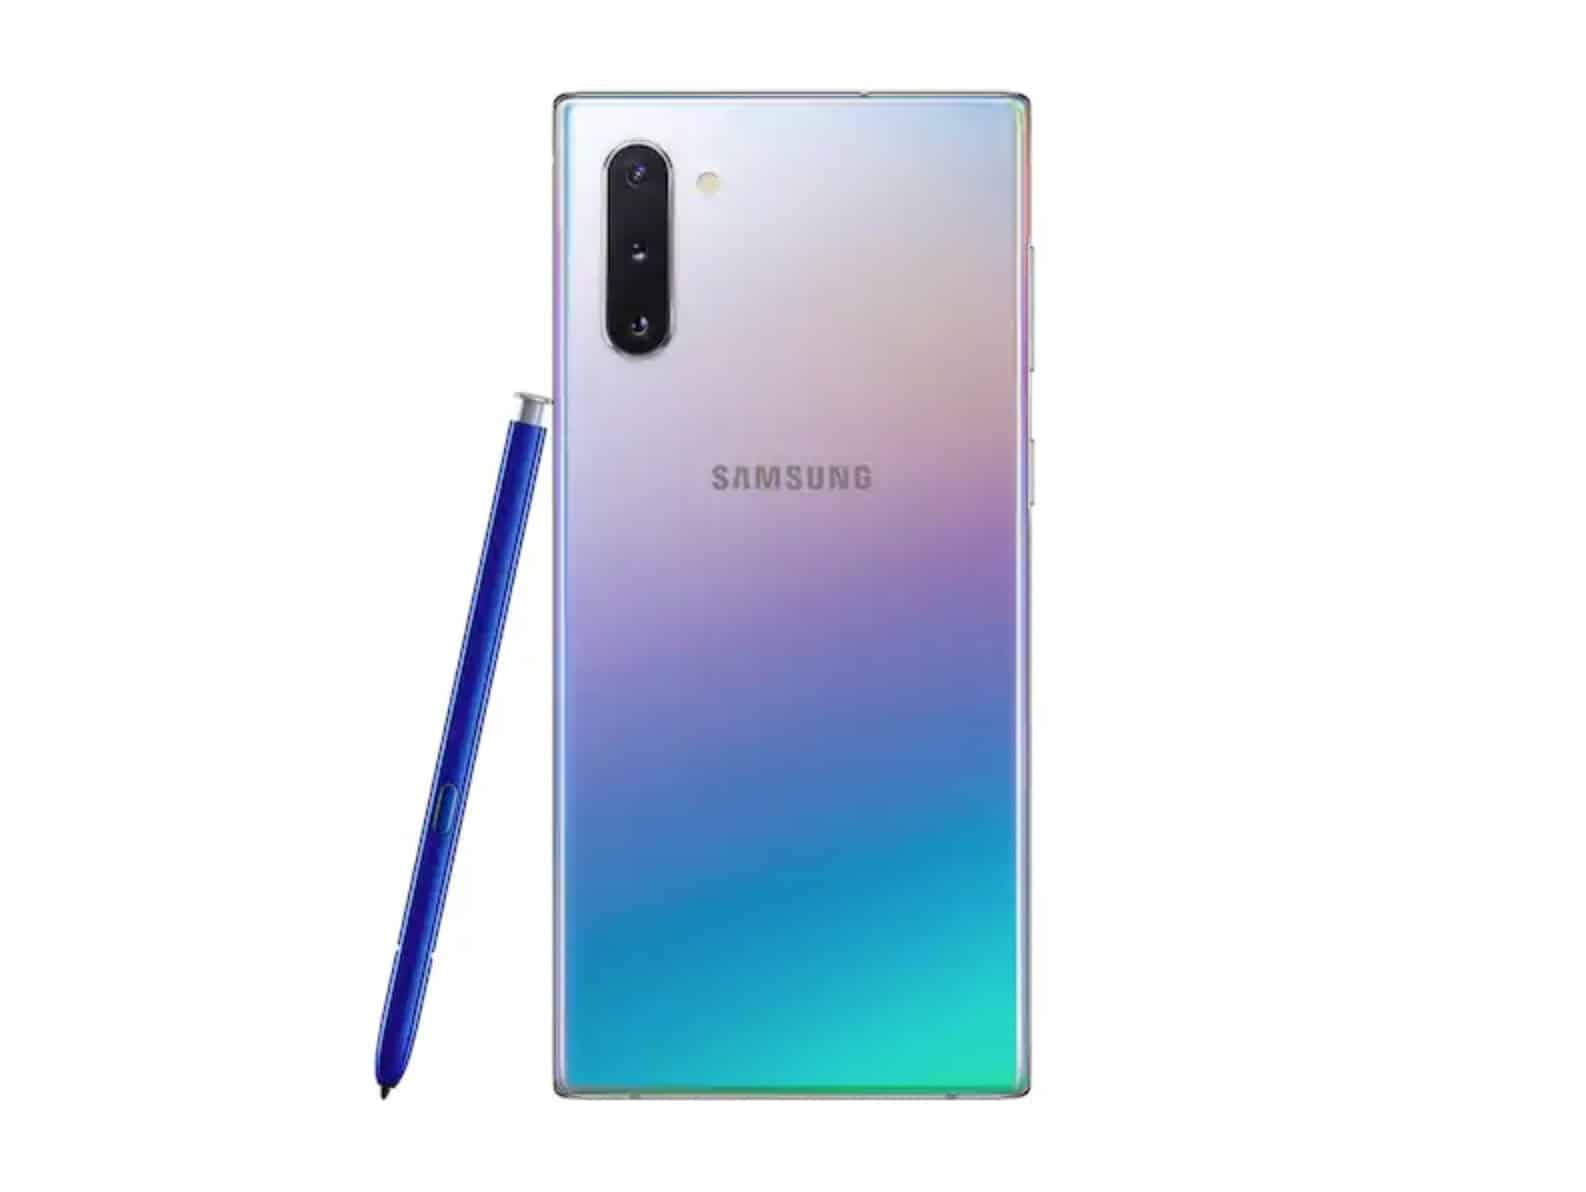 The new Galaxy Note 10 in the Aura Glow color. Apparently, iridescent is a big thing with the kids right now.